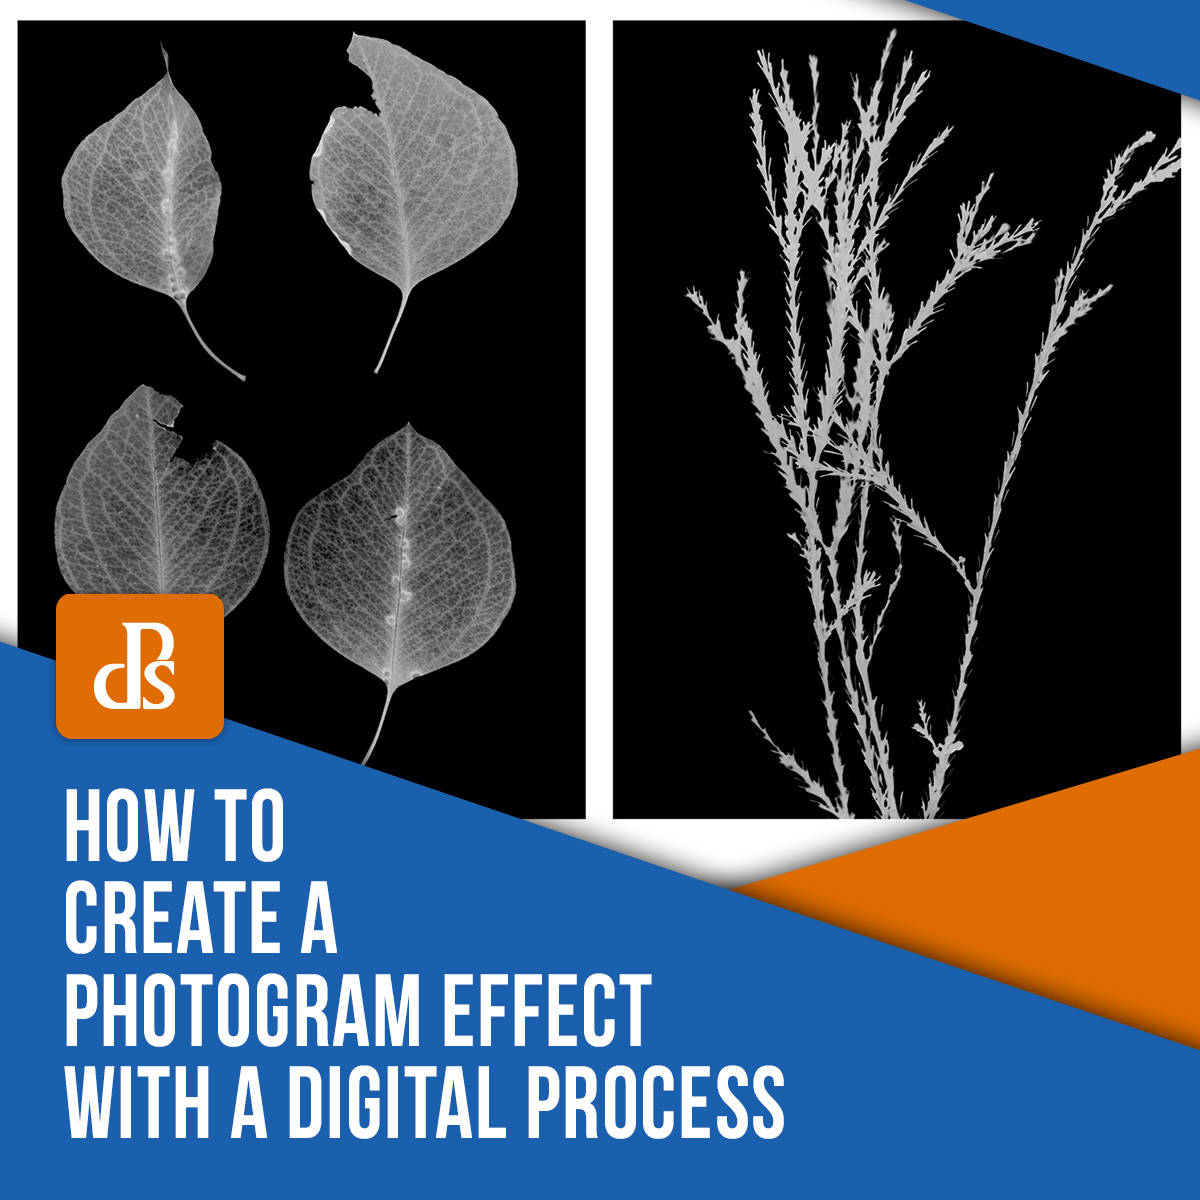 dps-how-to-photogram-effect